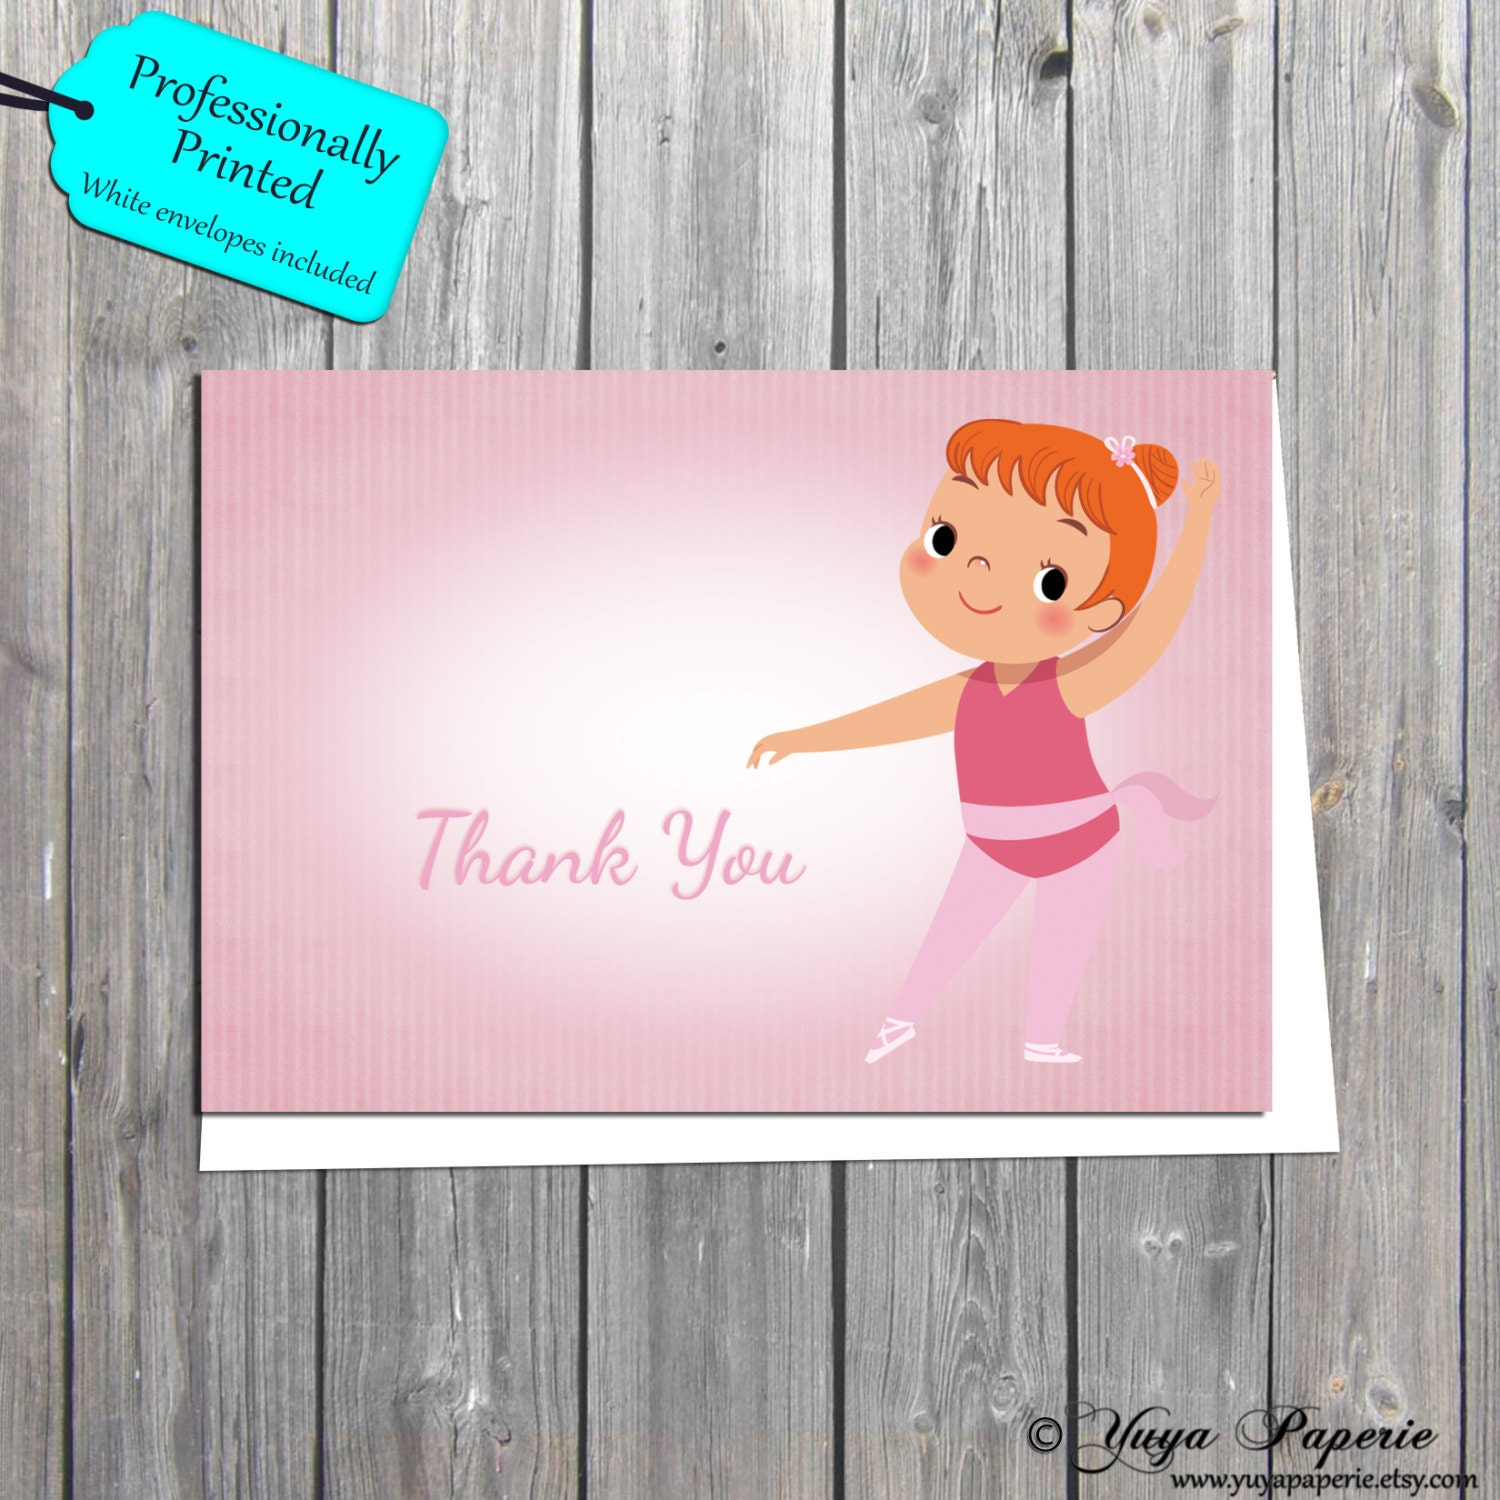 Ballerina thank you card kids thank you cards ballerina party ballerina thank you card kids thank you cards ballerina party thank you note cards professionally printed also available in digital format kristyandbryce Gallery